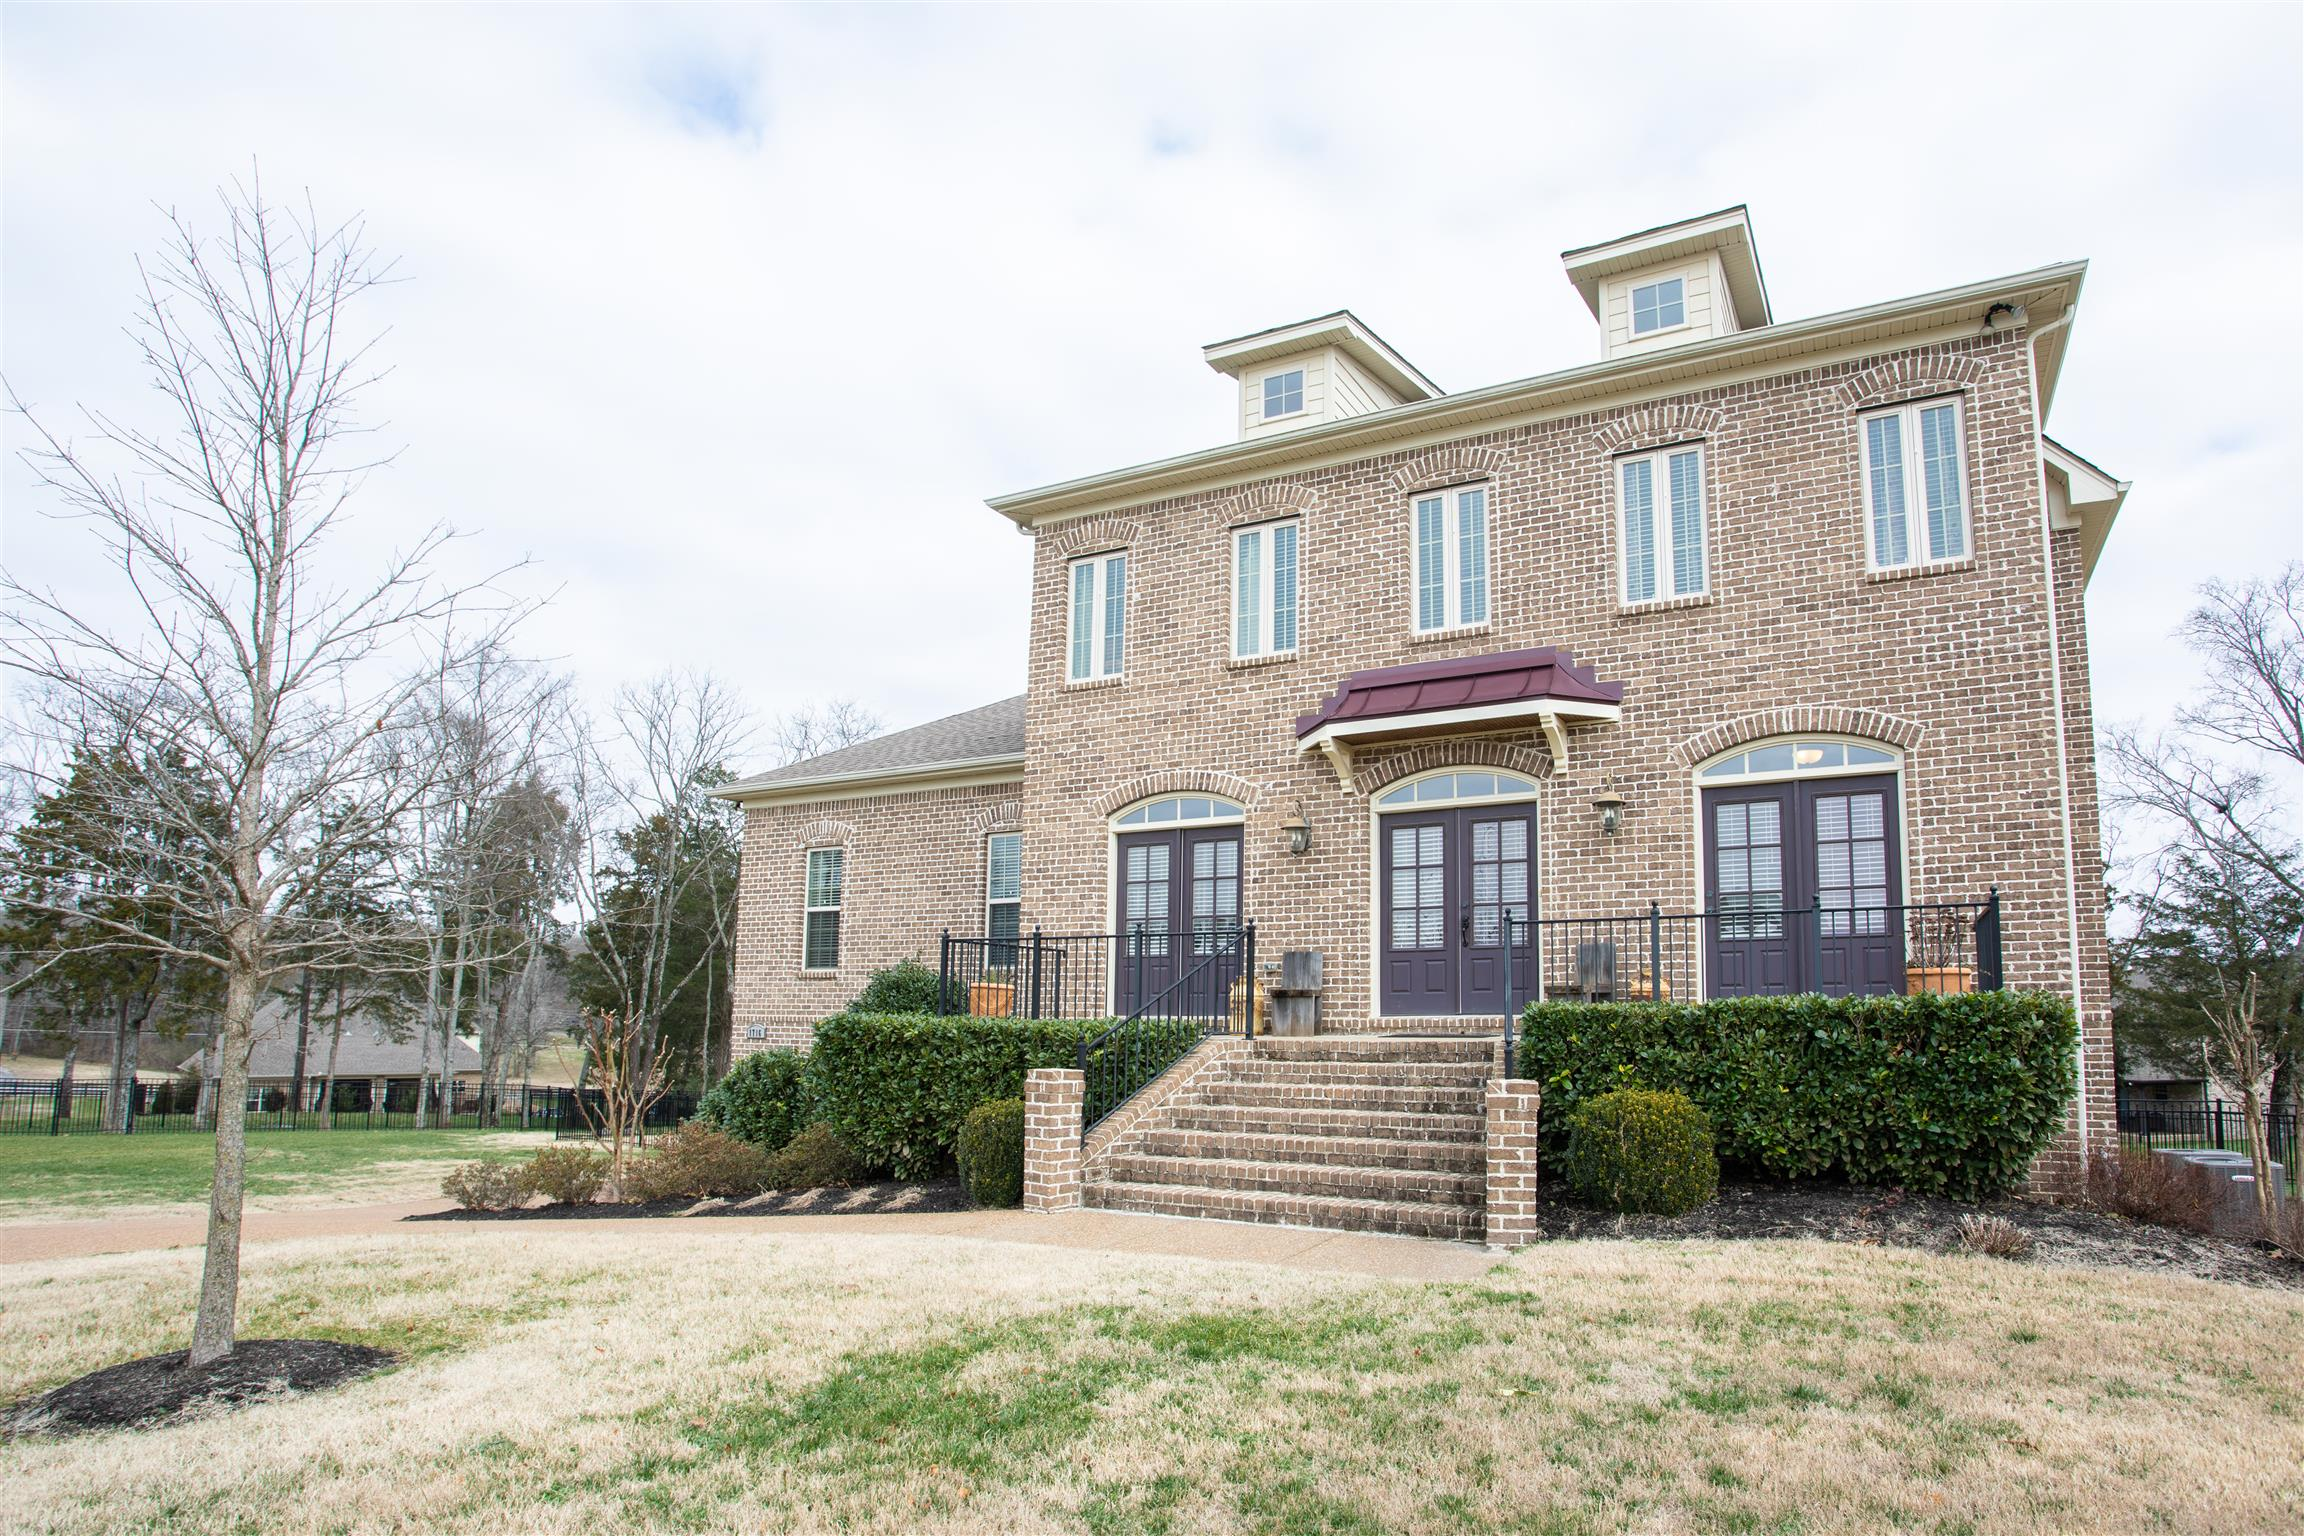 1716 Calla Lilly Ct, Nolensville, Tennessee